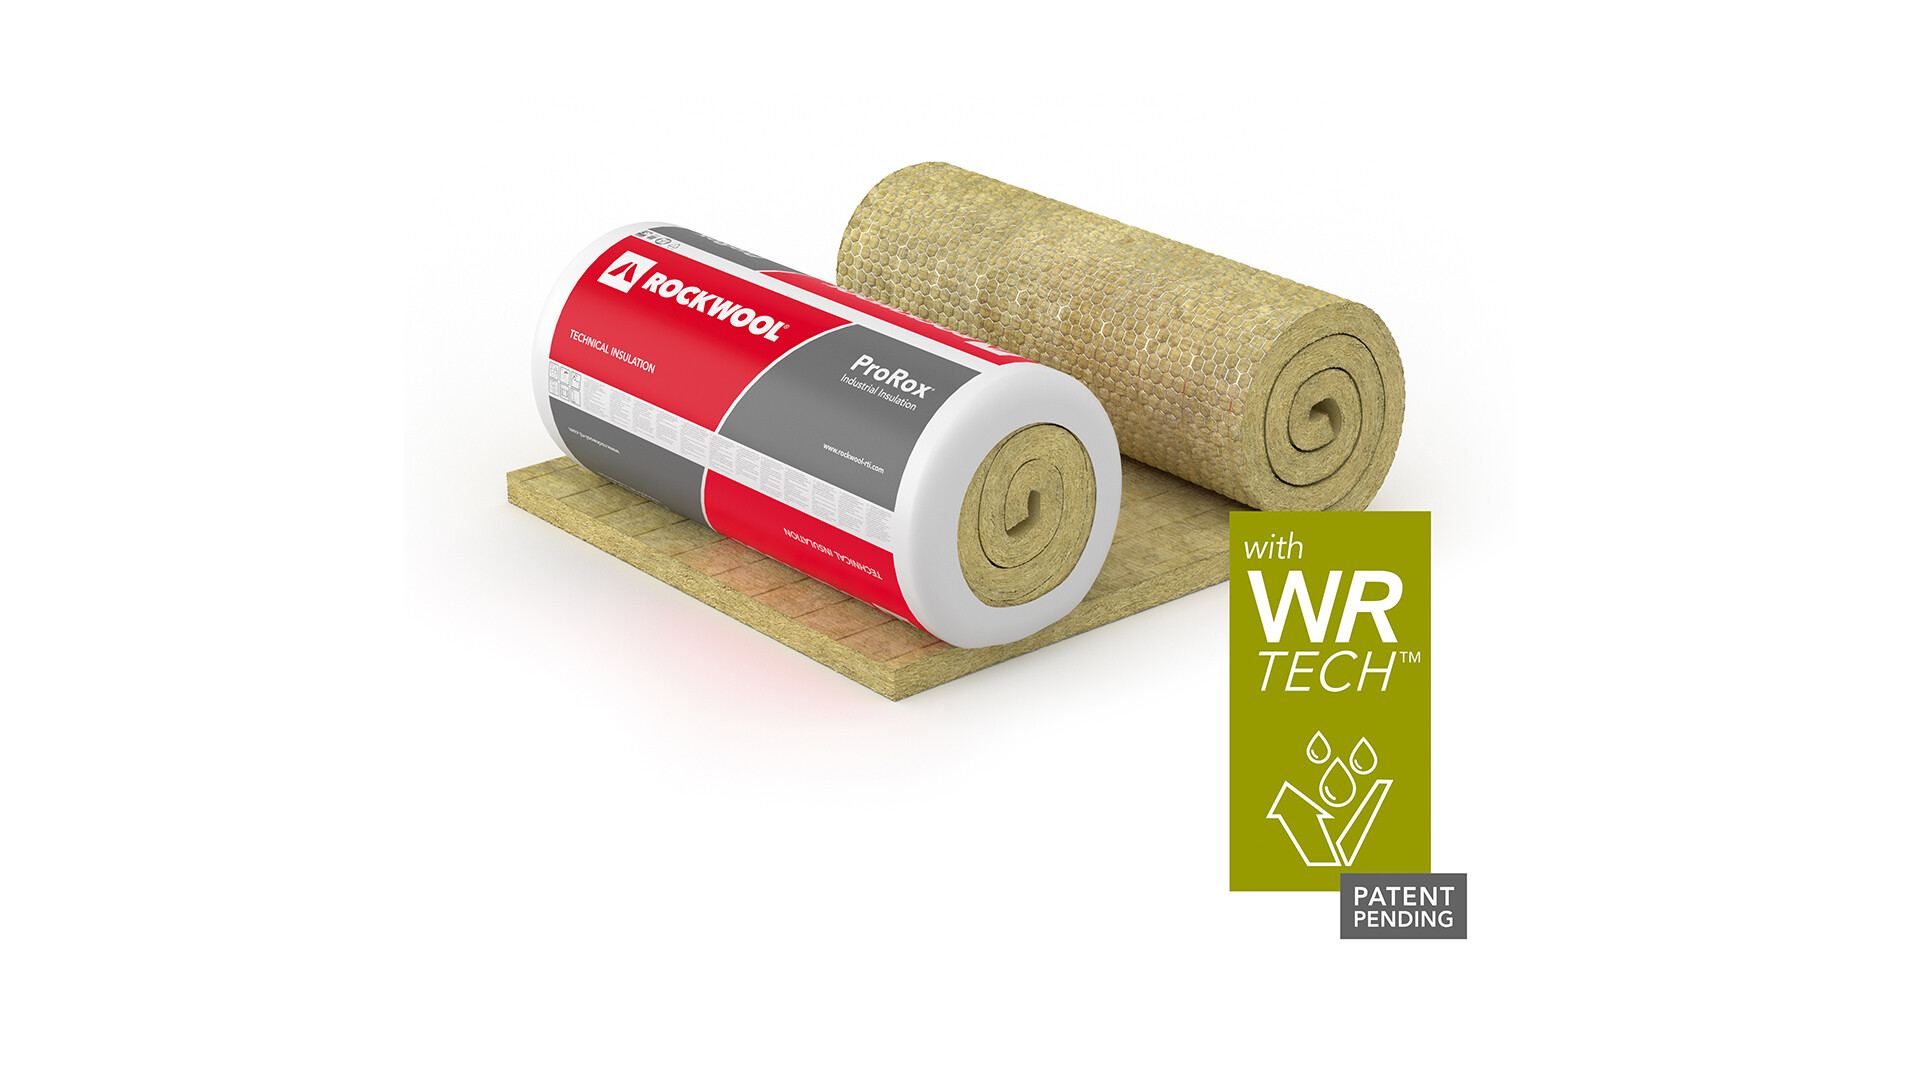 ProRox, industry, industrial, product, WM, wired mat, WR-Tech, packaging, mono product line name, WR-Tech label, 3D image, product catalogue